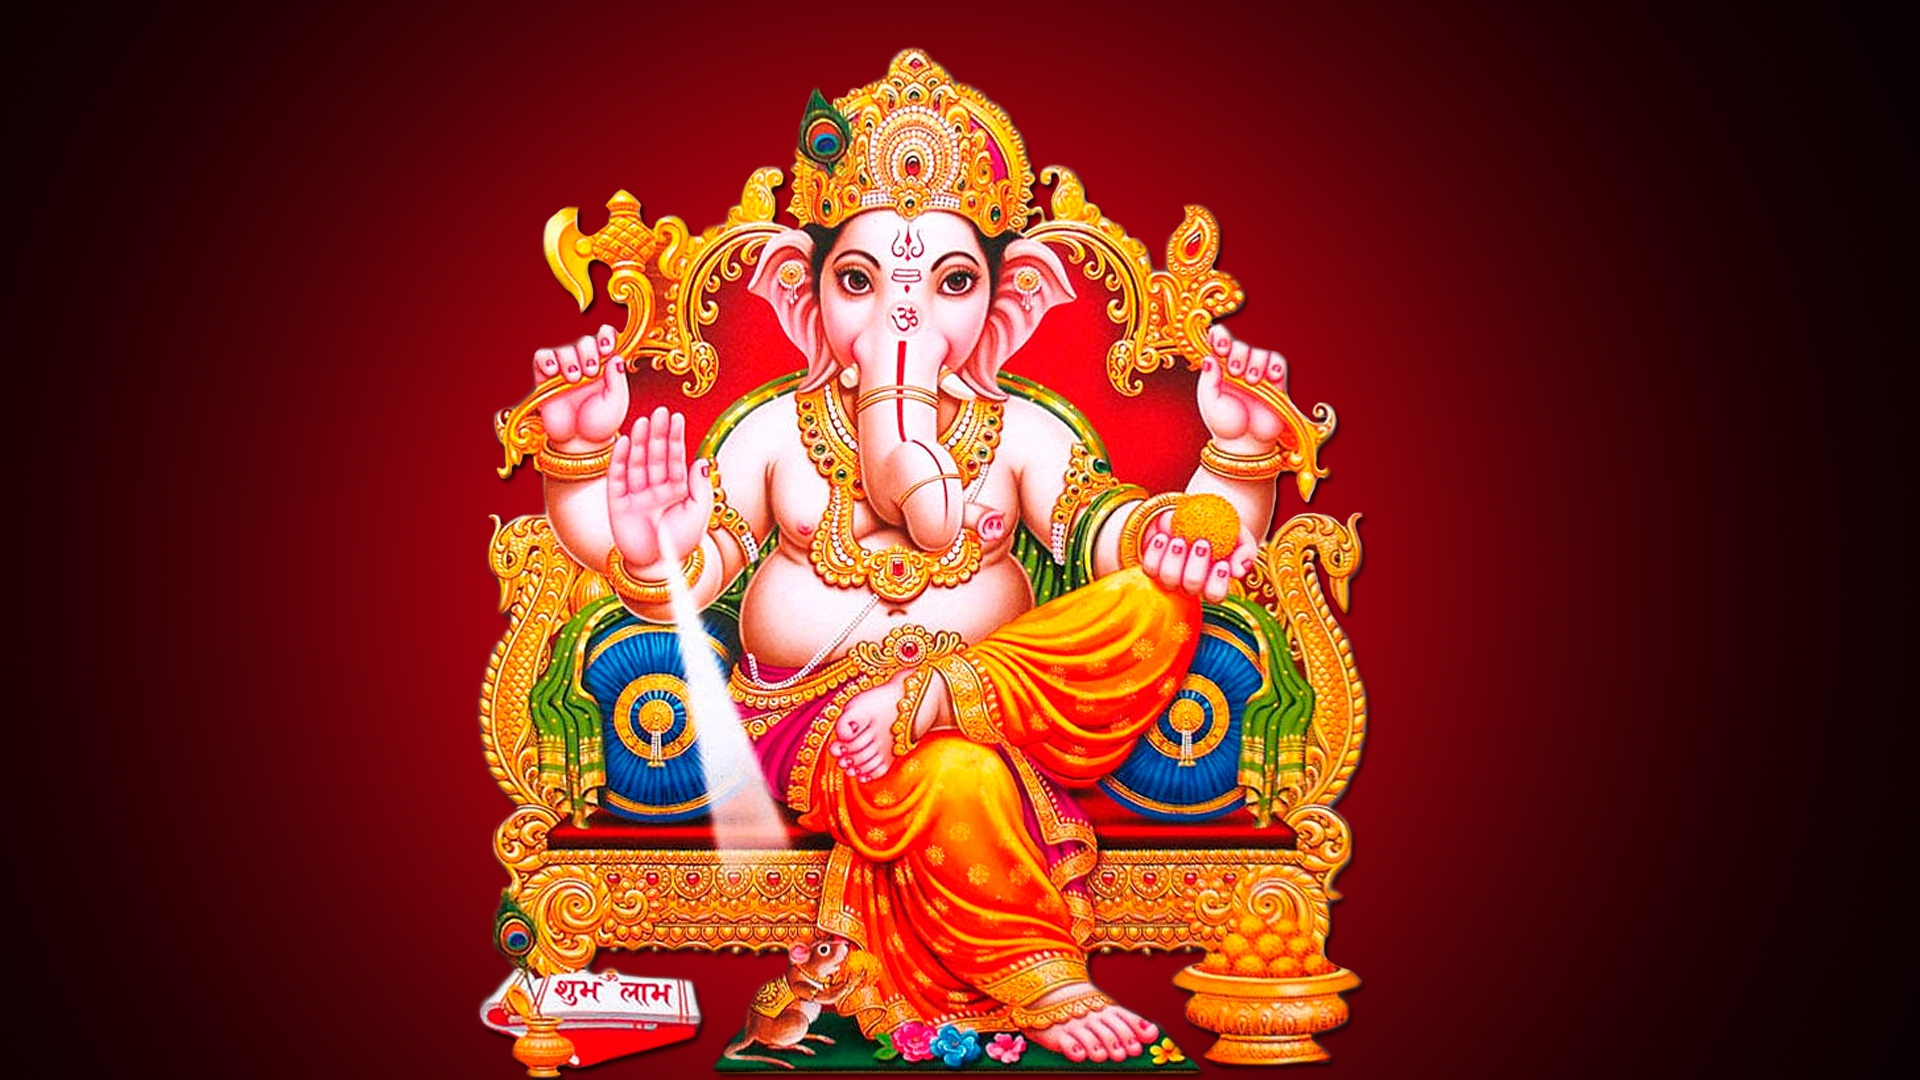 Ganesh Images, Lord Ganesh Photos, Pics & HD Wallpapers